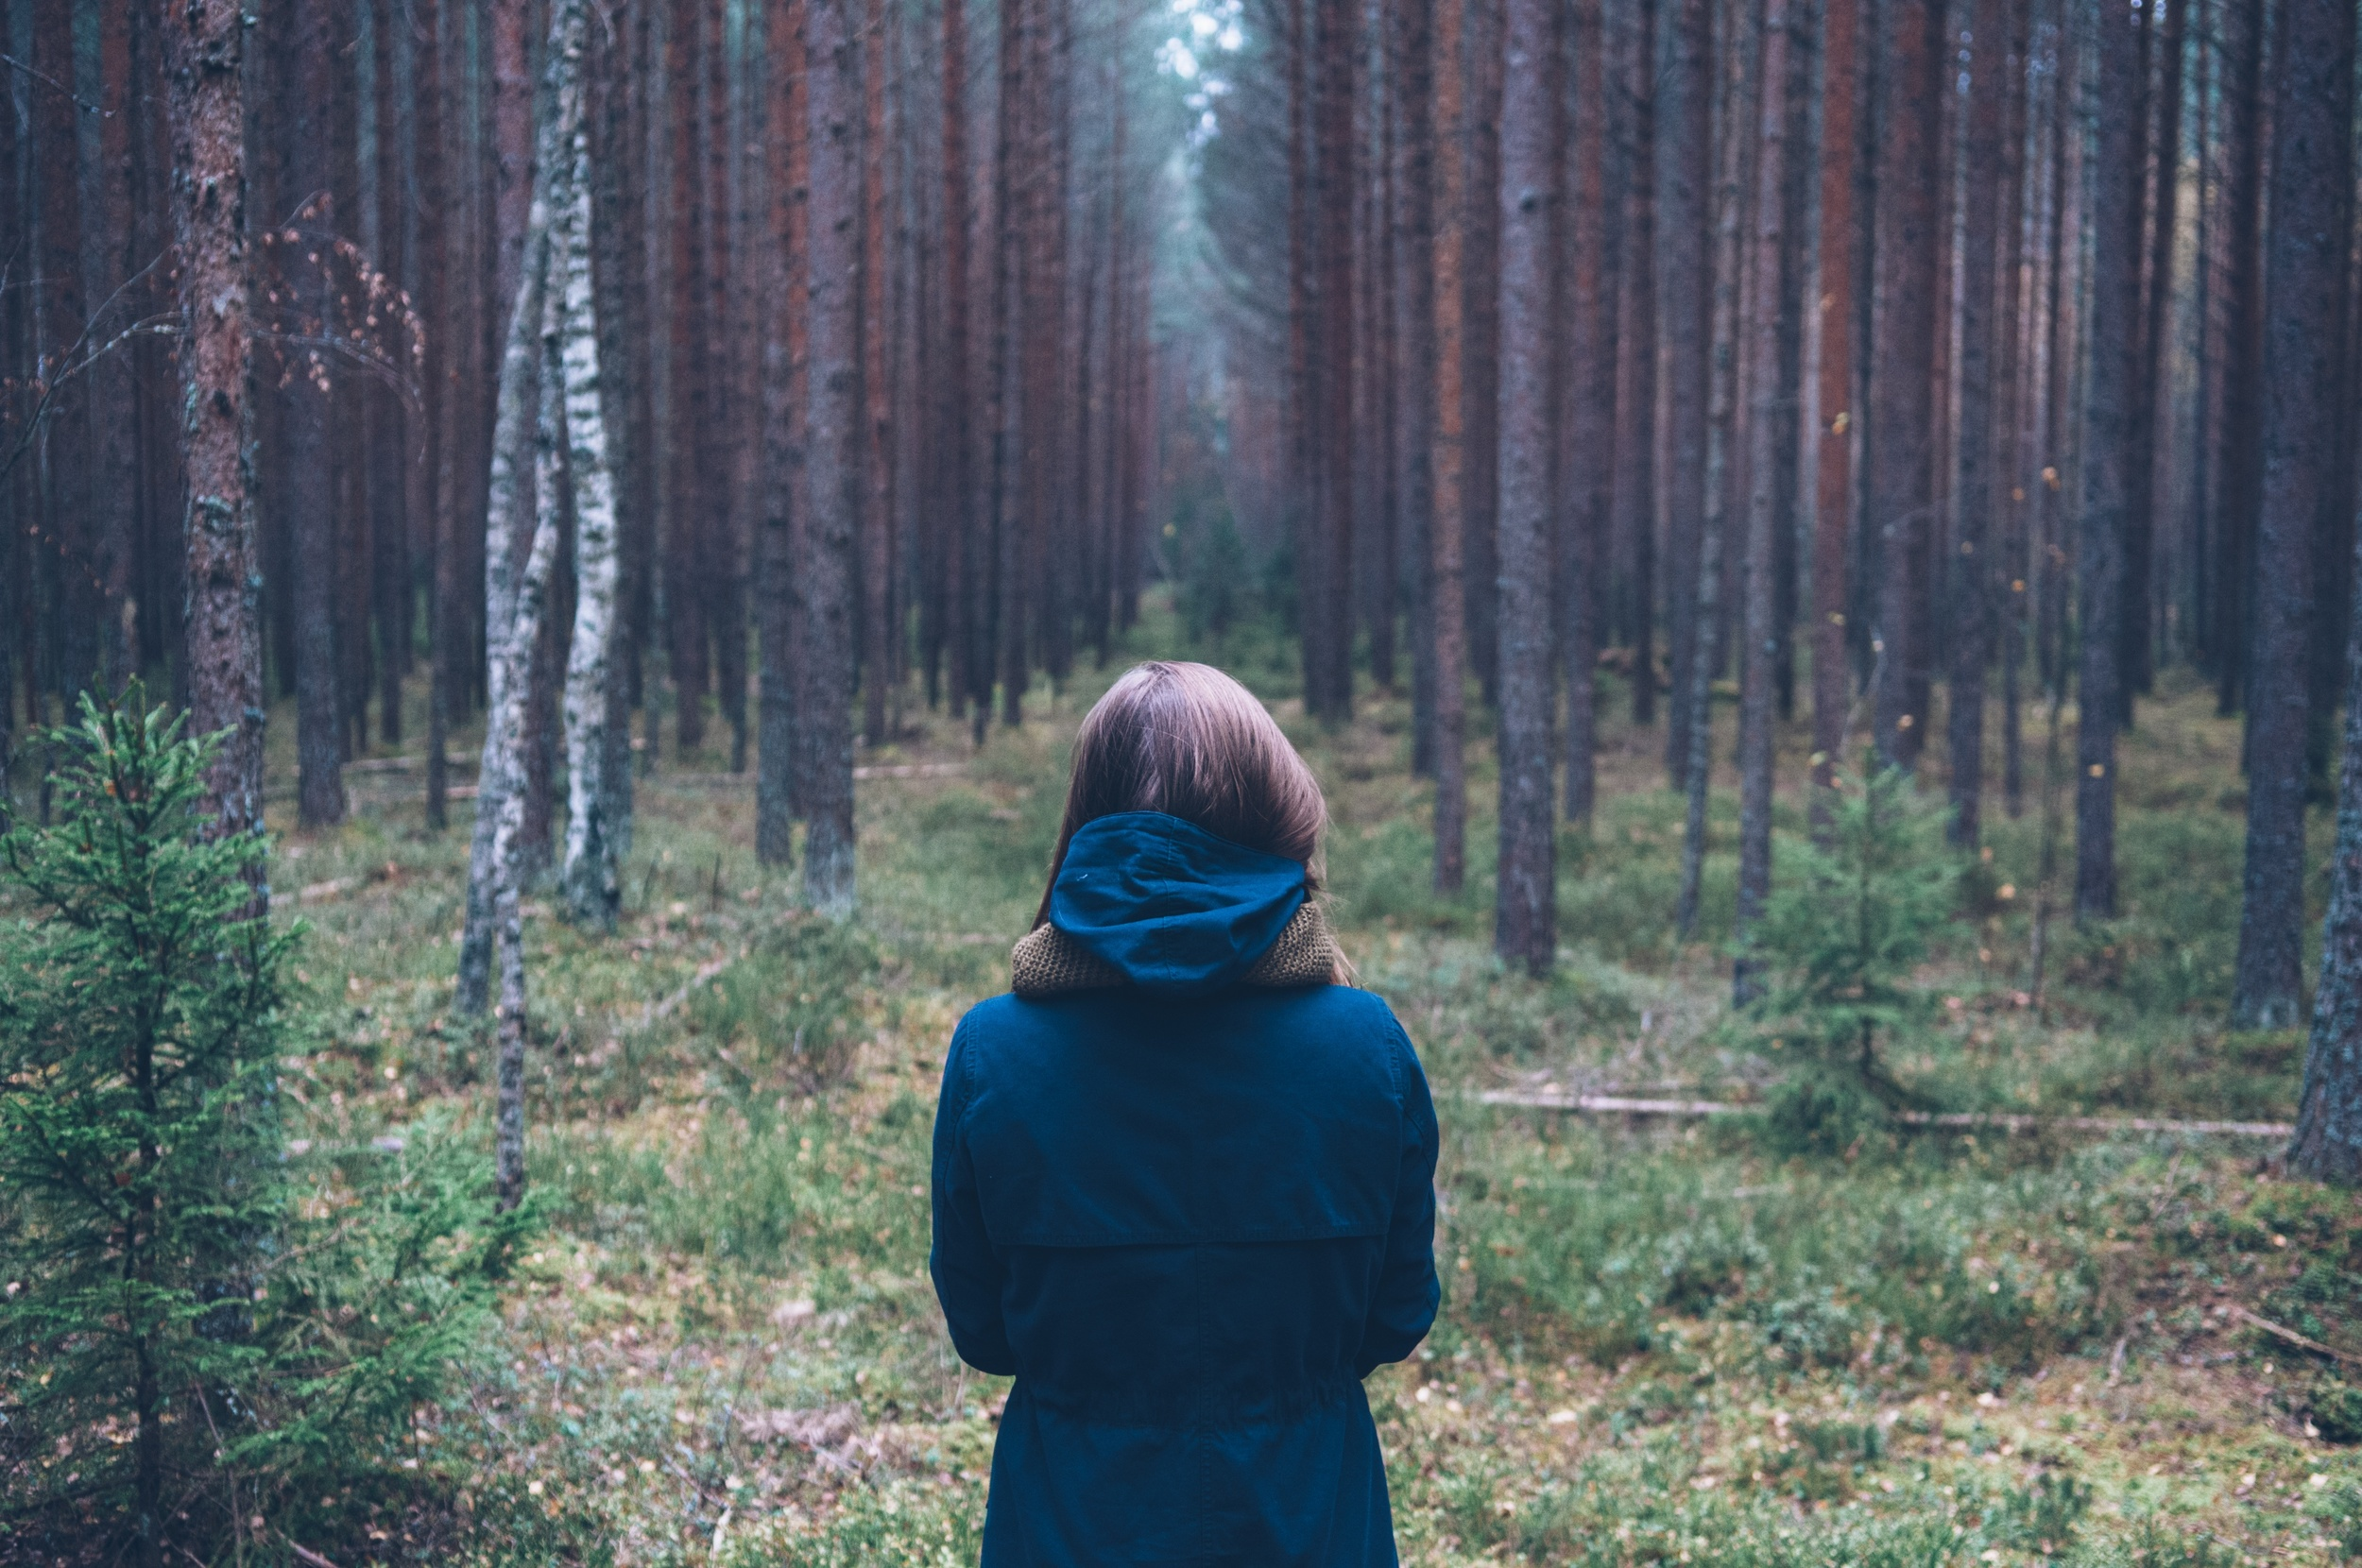 Anxiety is common after trauma